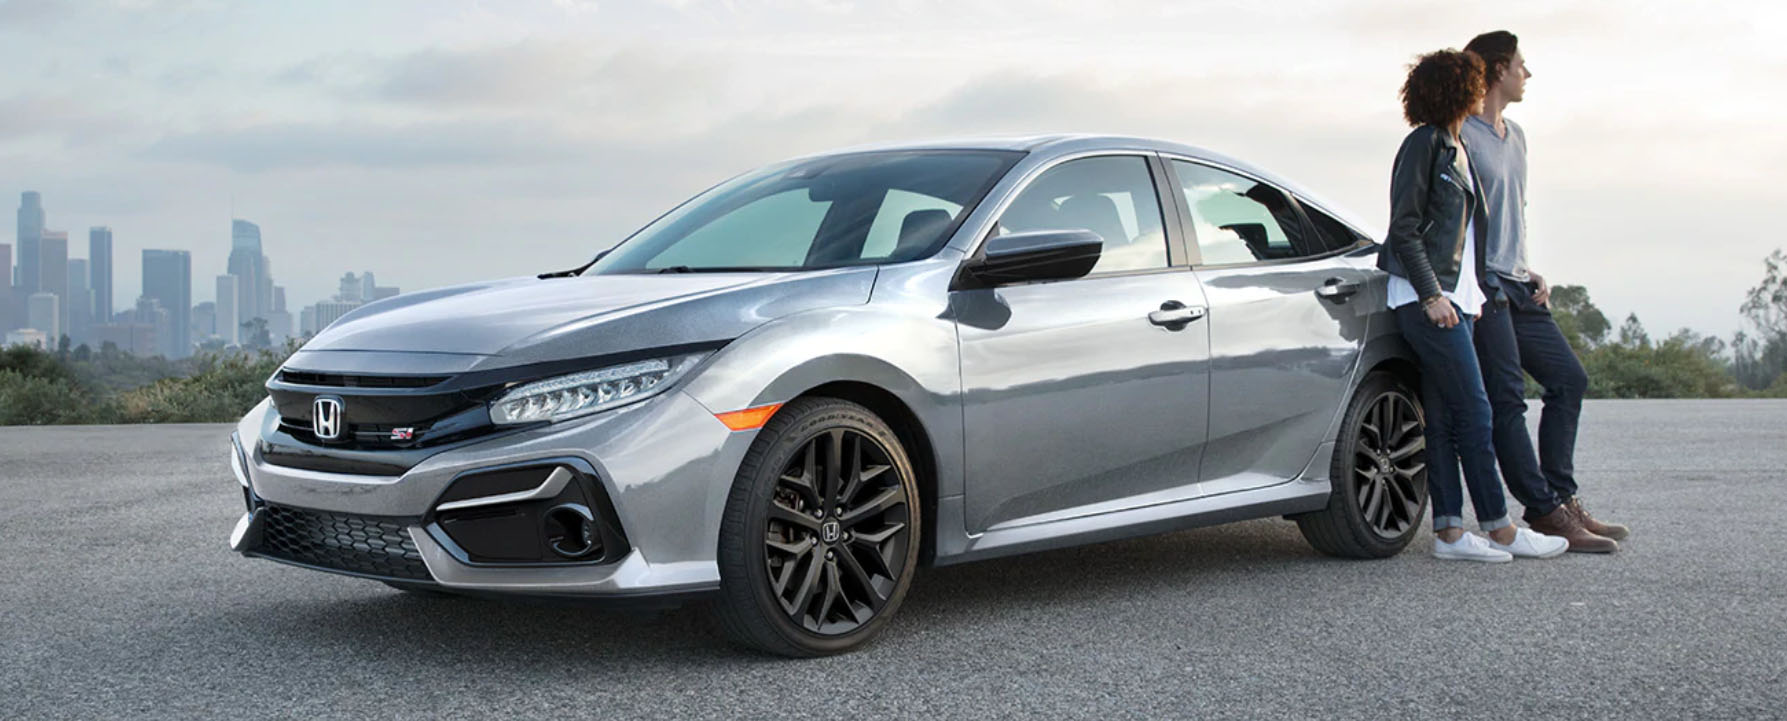 2020 Honda Civic Si Sedan For Sale in Murray